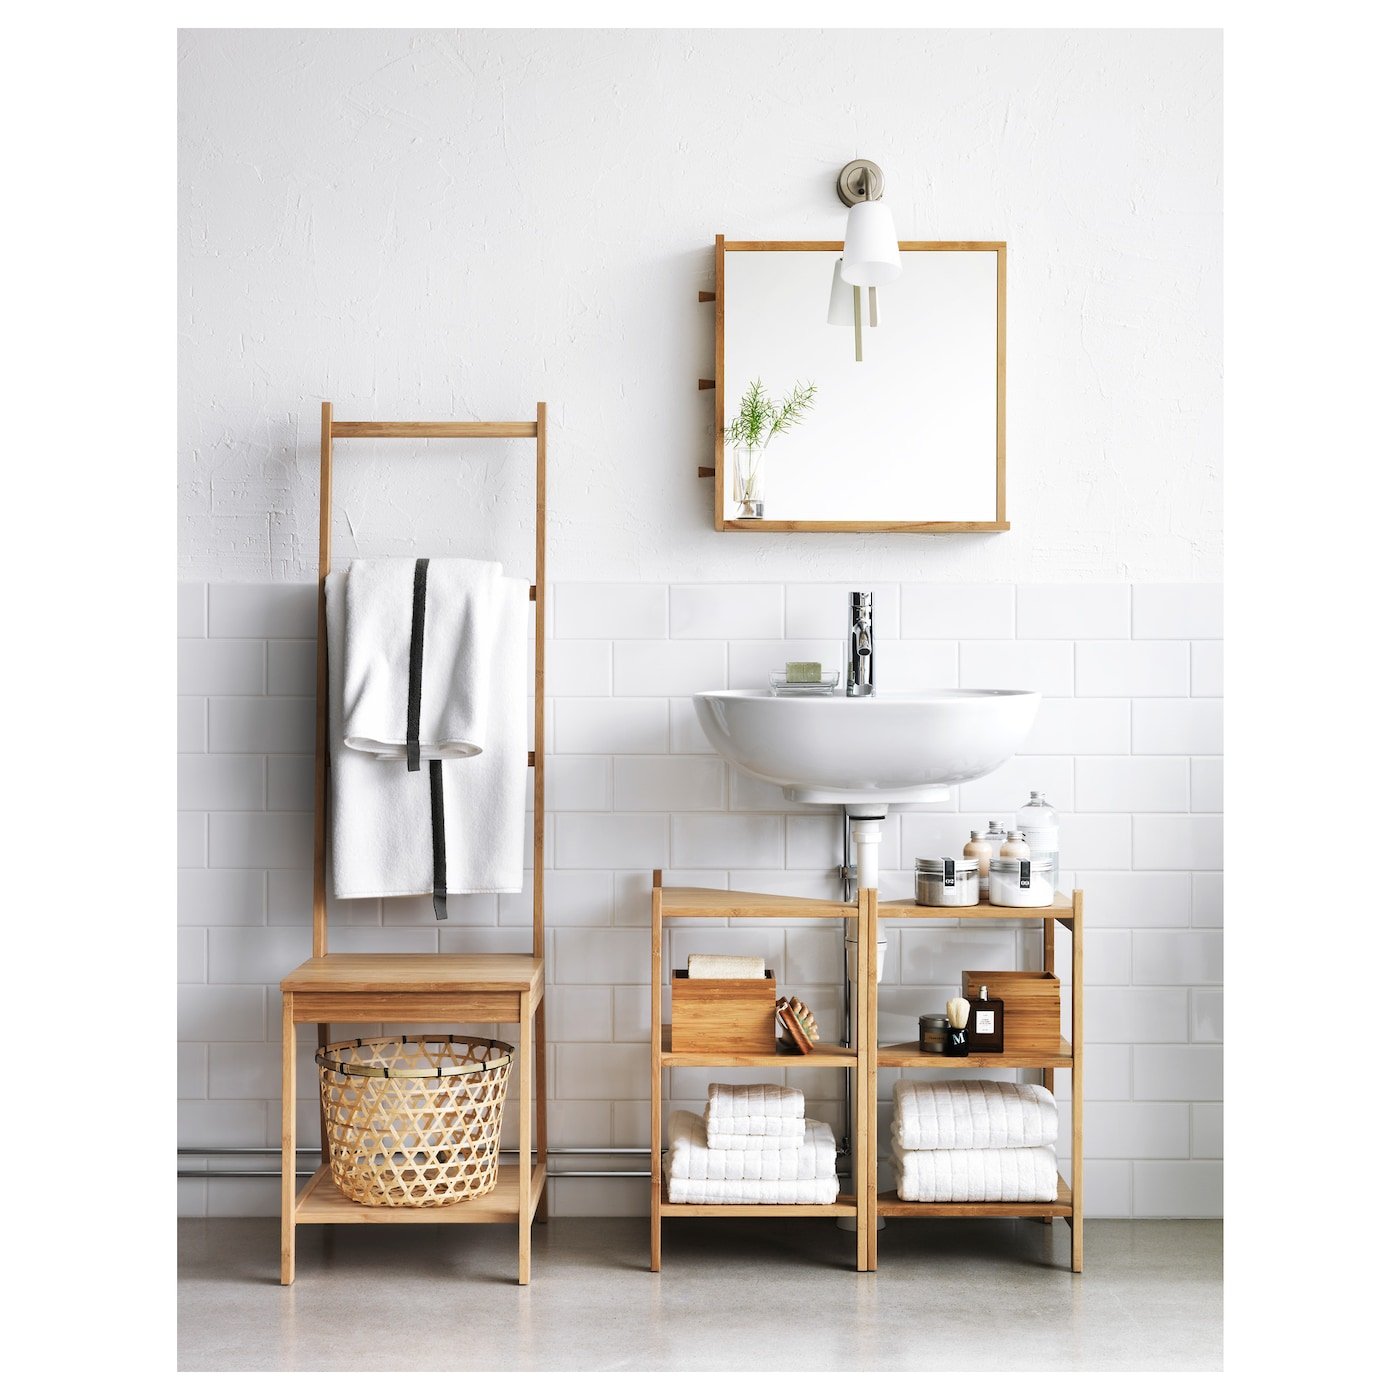 Bamboo Bathroom Accessories Ikea Small House Interior Design